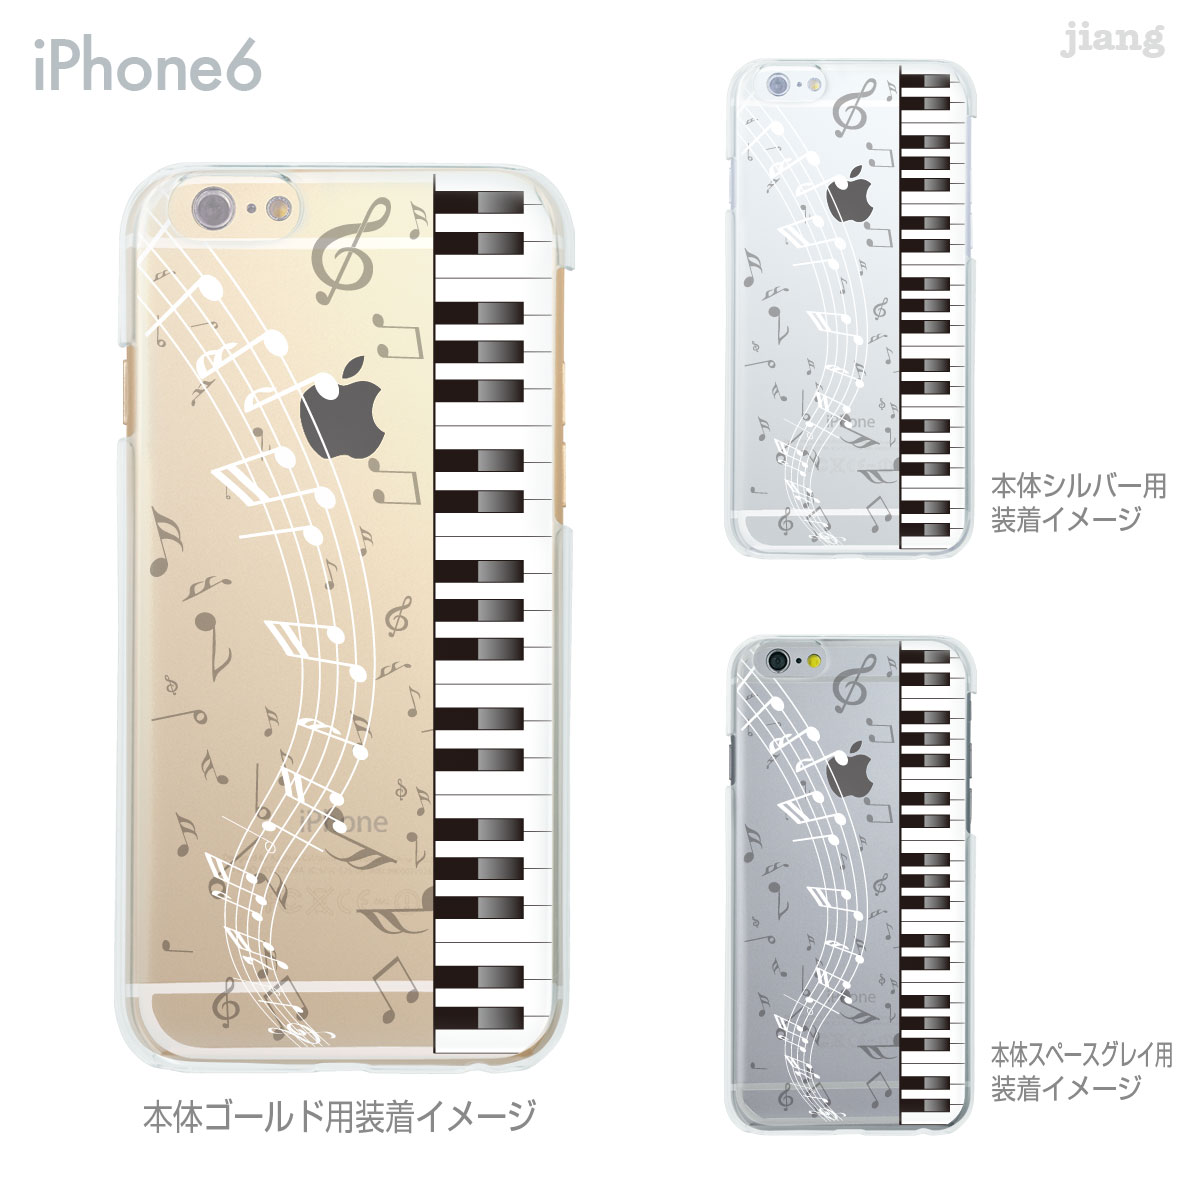 iphoneXSケース iPhoneXS Max iPhoneXR iPhoneX iPhone8 Plus ケース iPhone iphone7ケース iphone7 iphone7s Plus iPhone6s iPhone6 Plus iphoneSE ケース iPhone5s スマホケース ハードケース カバー かわいい ピアノと音符 08-ip6-ca0048c